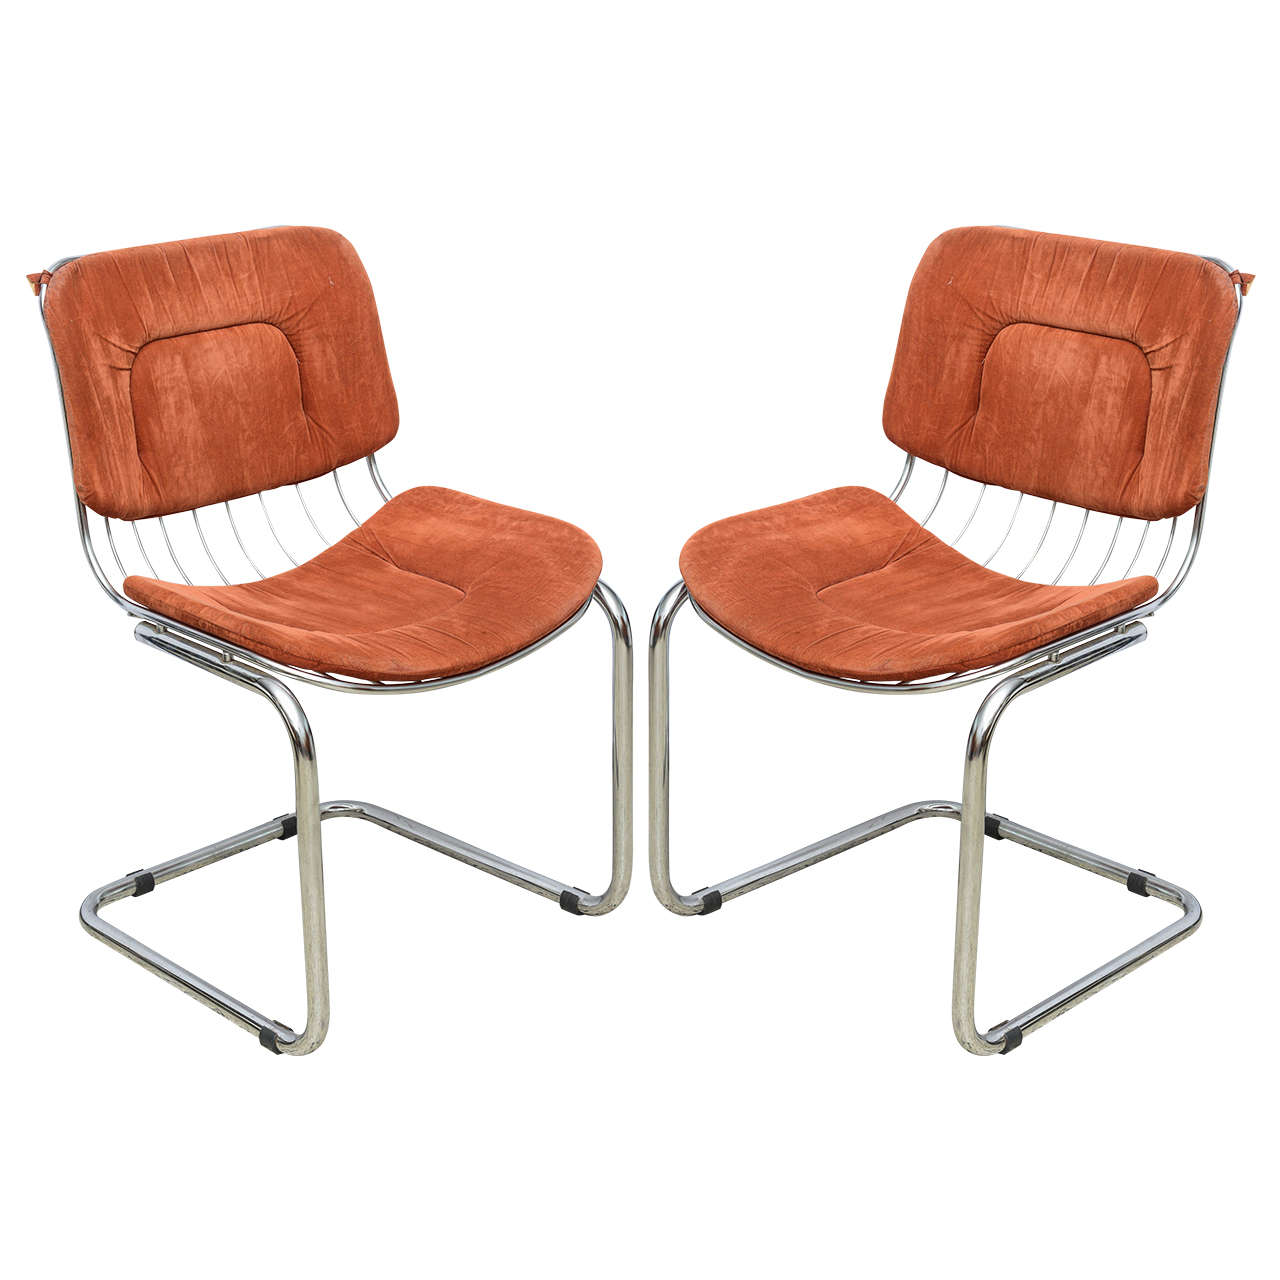 Pair Of Italian Chrome Wire Chairs, Italy Late 1960s For Sale